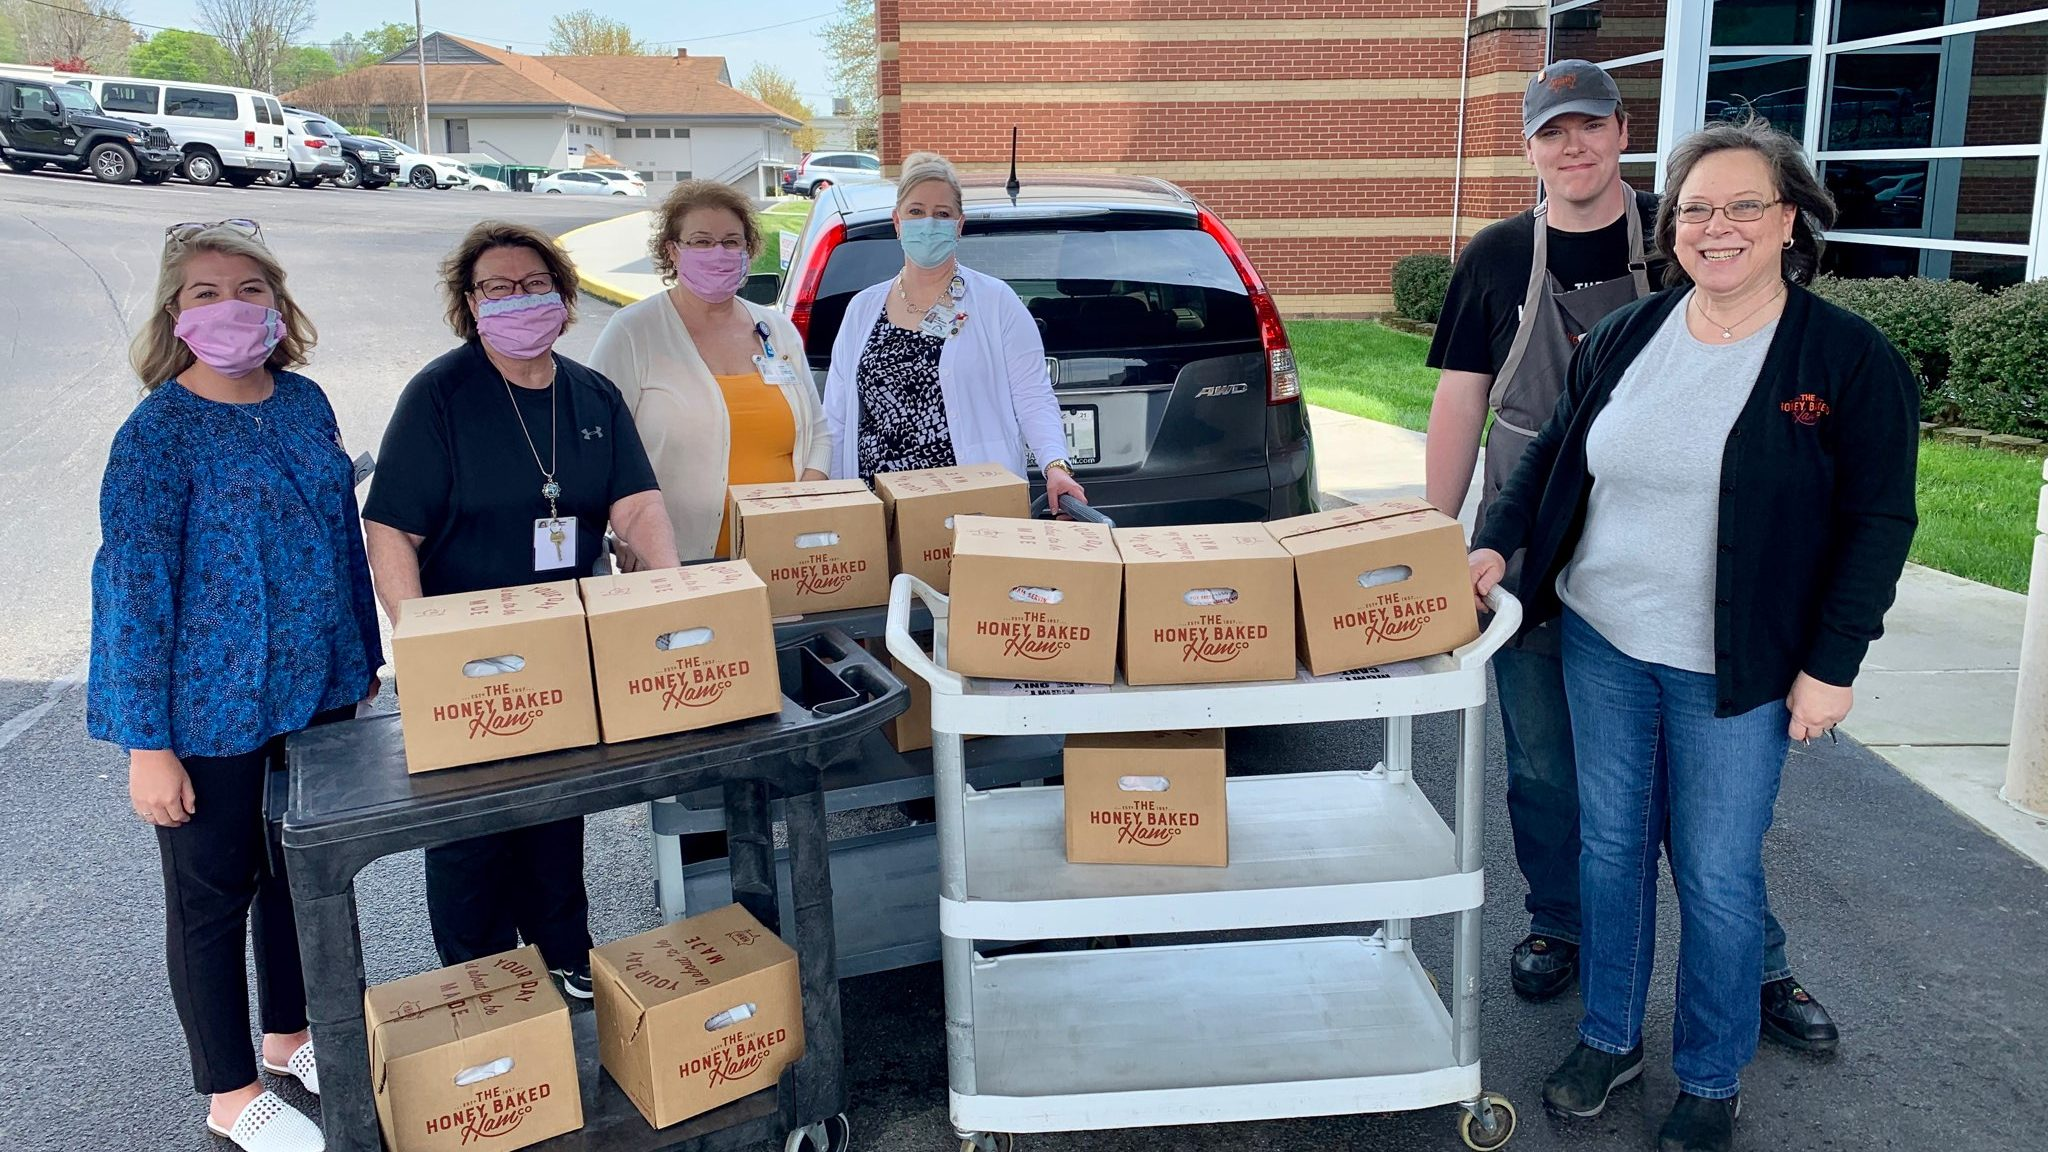 Honey Baked Ham Co. generously donated 12 hams to feed our entire hospital staff on Good Friday. We are grateful to be blessed with such amazing support.